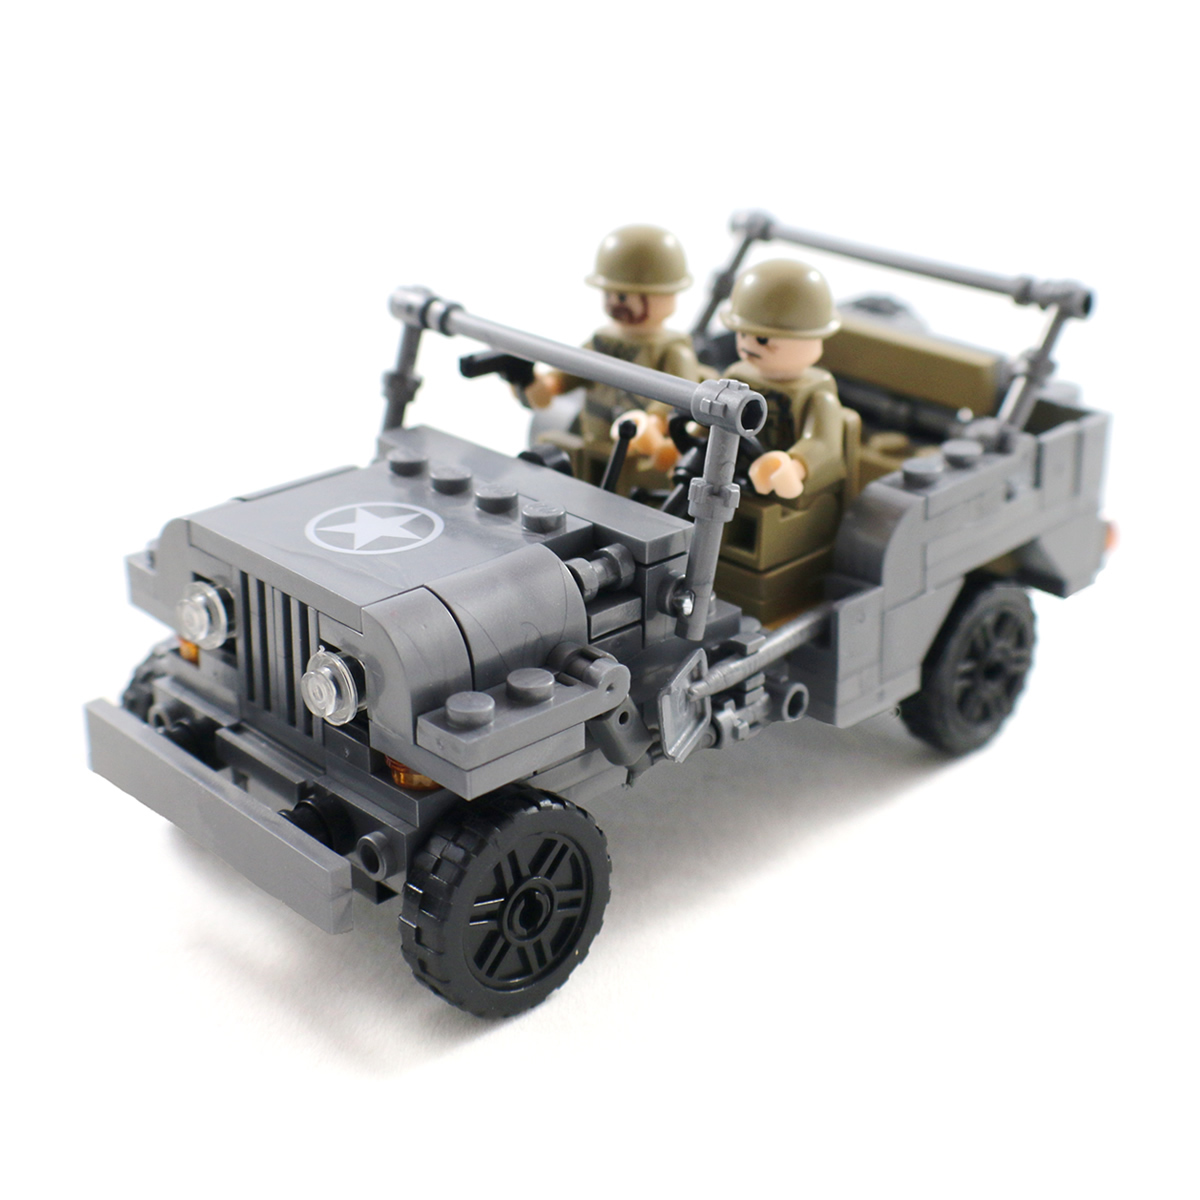 WW2 US Army Jeep With Soldier Minifigures